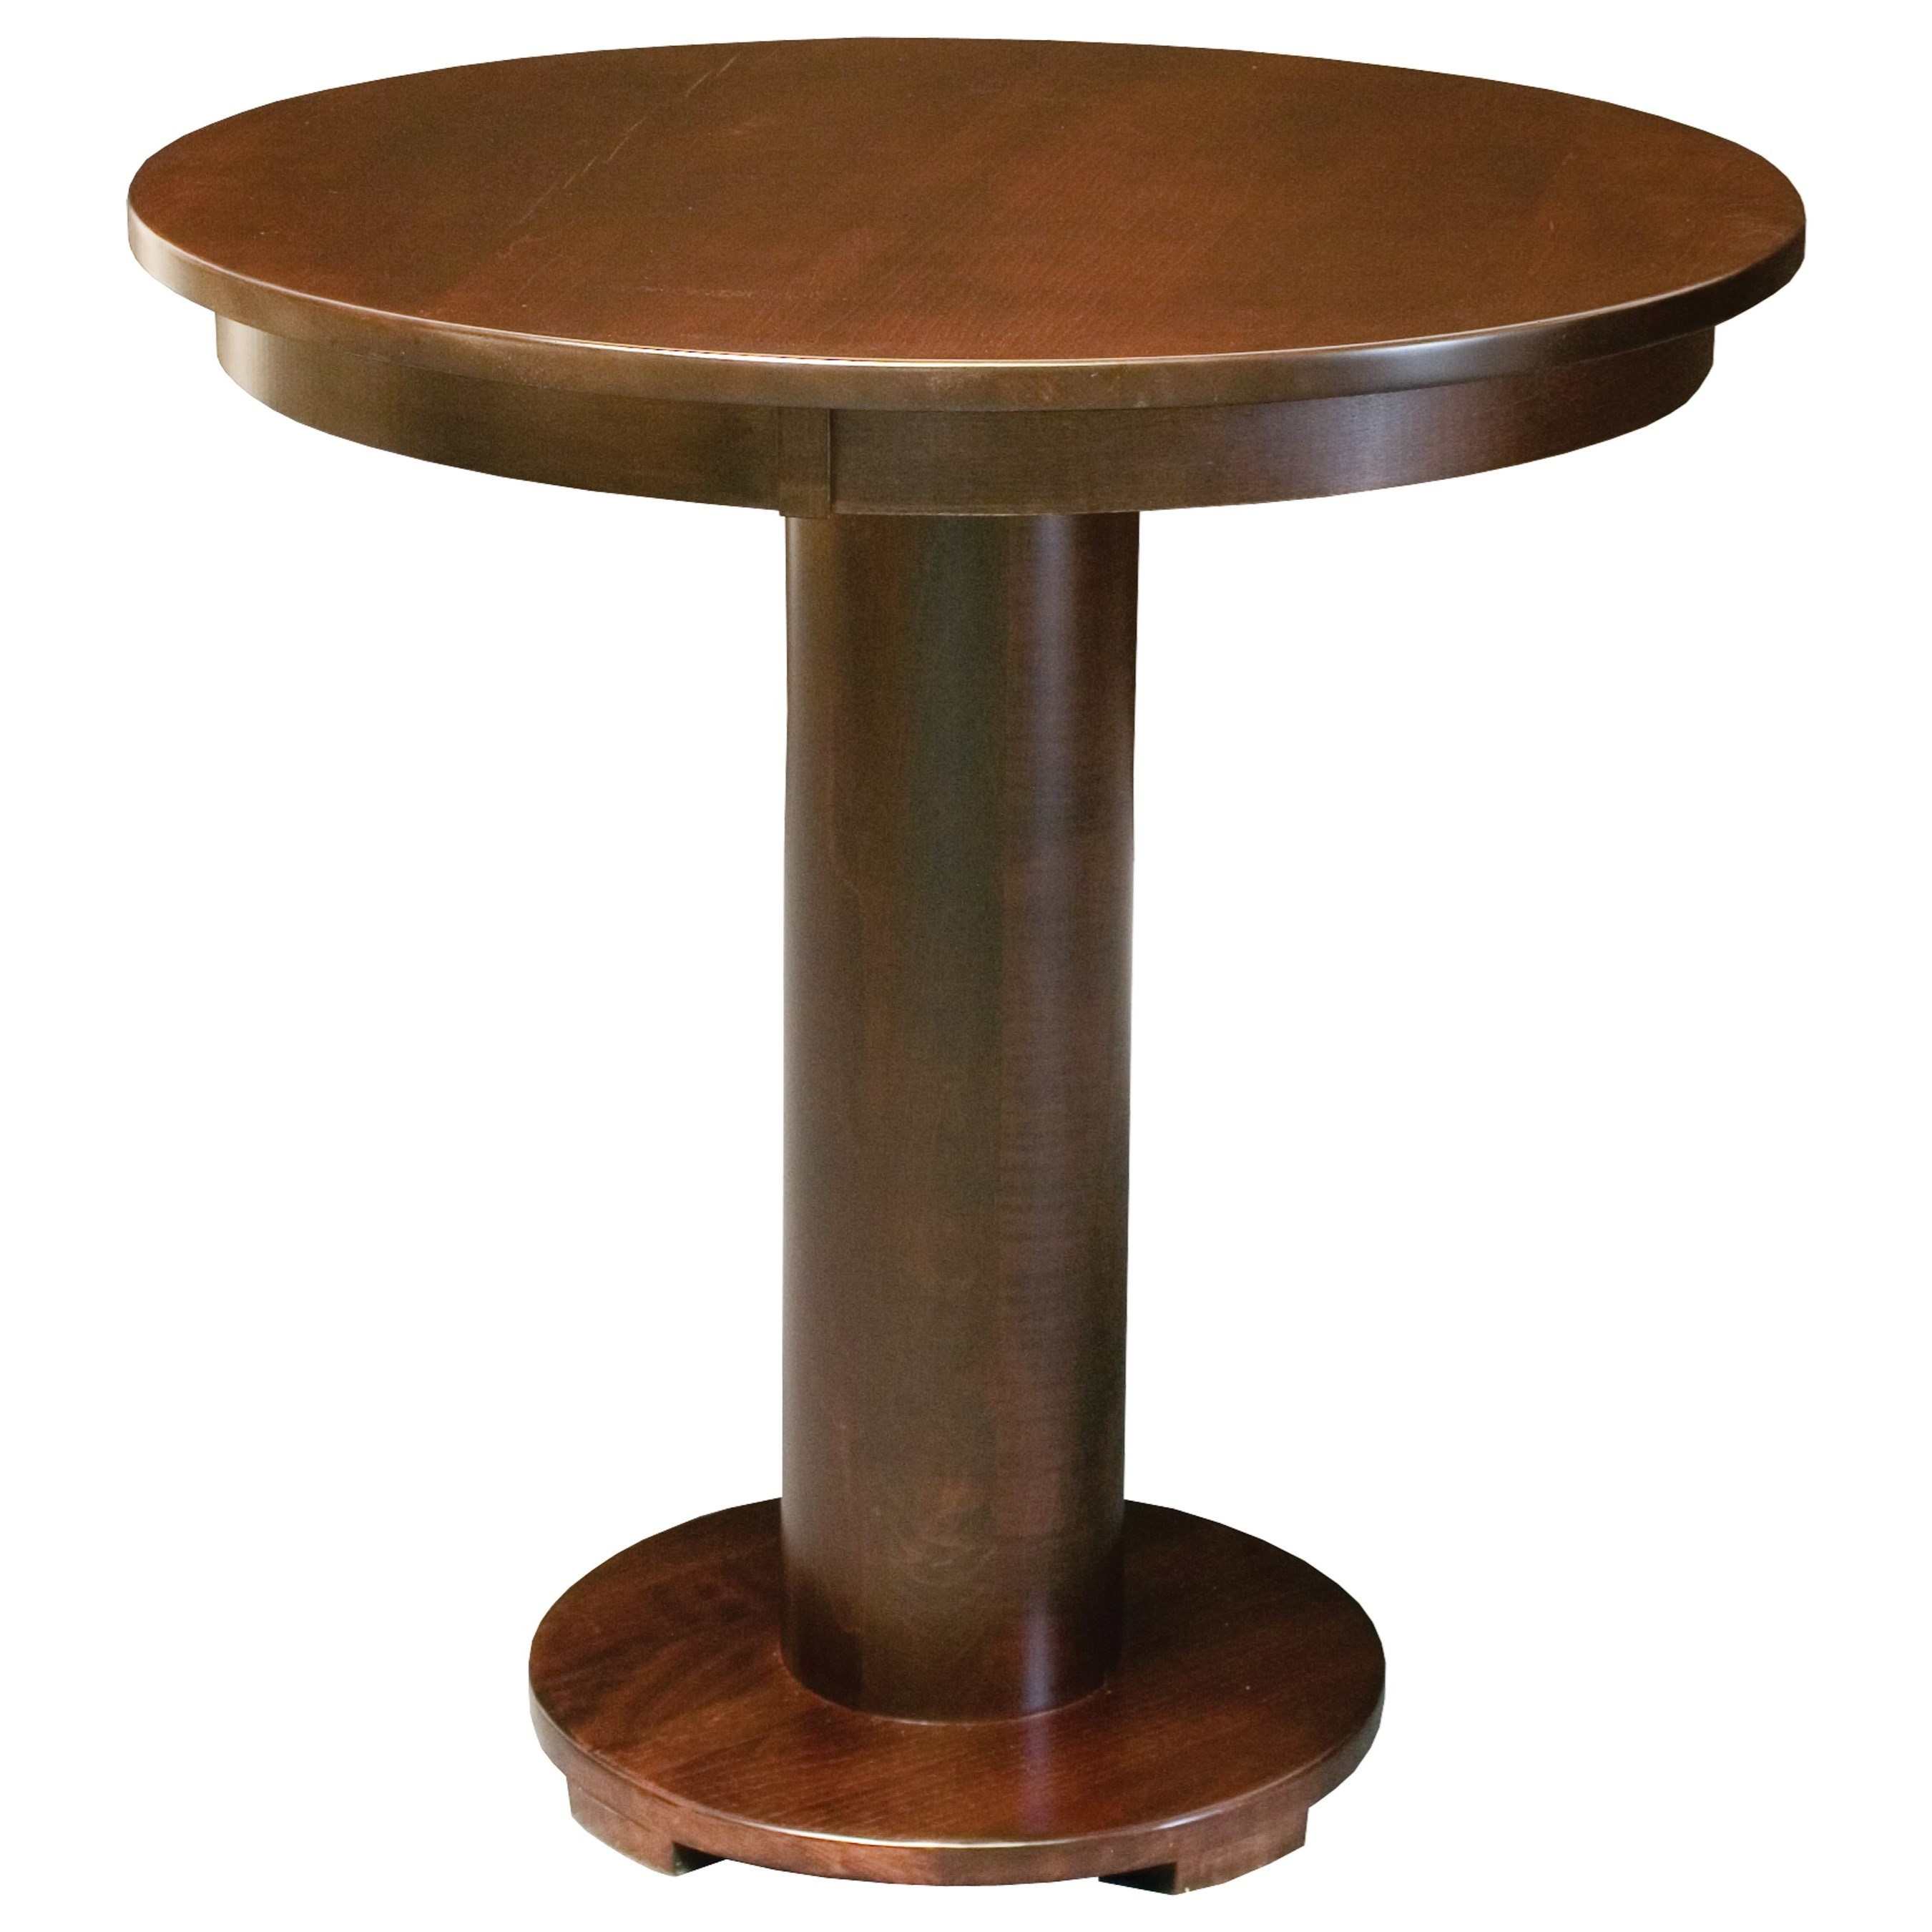 "Customizable 30"" Solid Wood Pedestal Table"